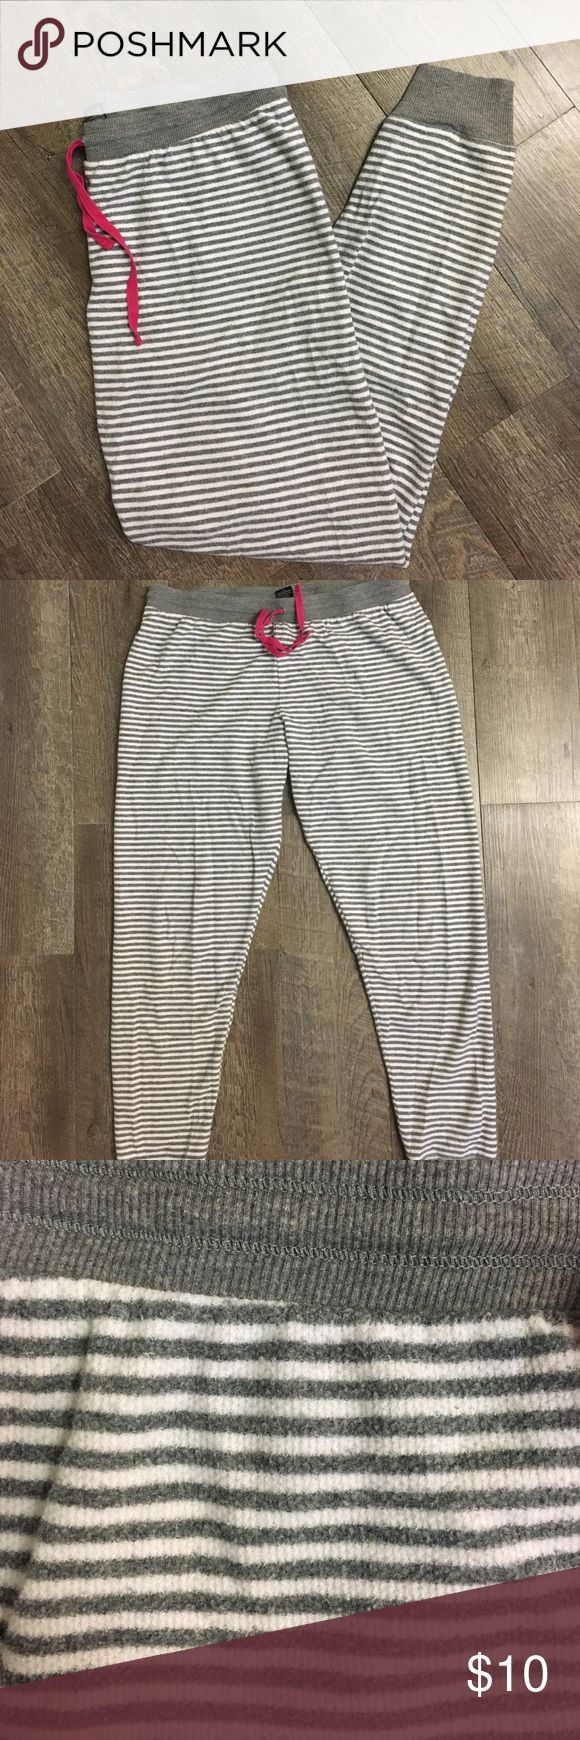 Women's super cozy pajama pants Women's Large grey and white striped cozy pajama pants Intimates & Sleepwear